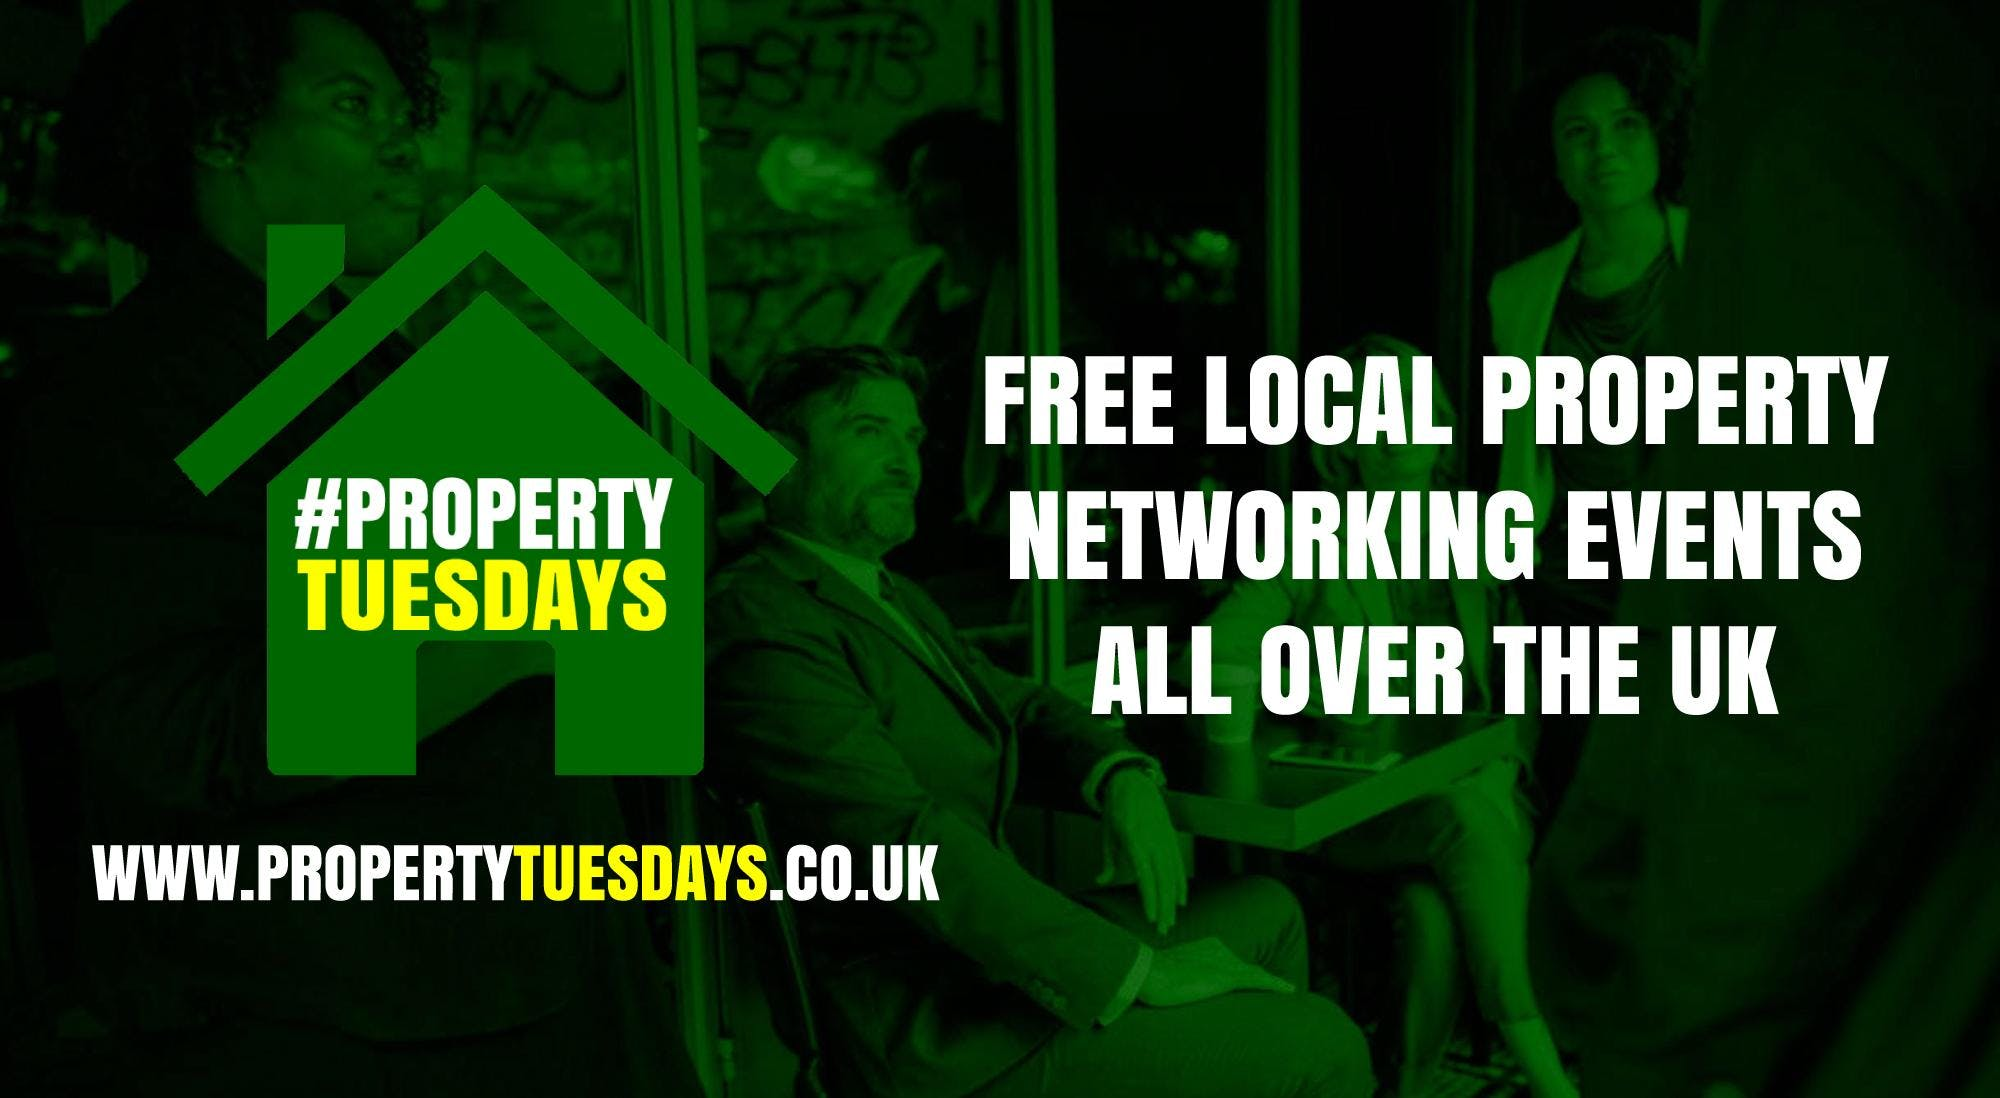 Property Tuesdays! Free property networking event in Worksop